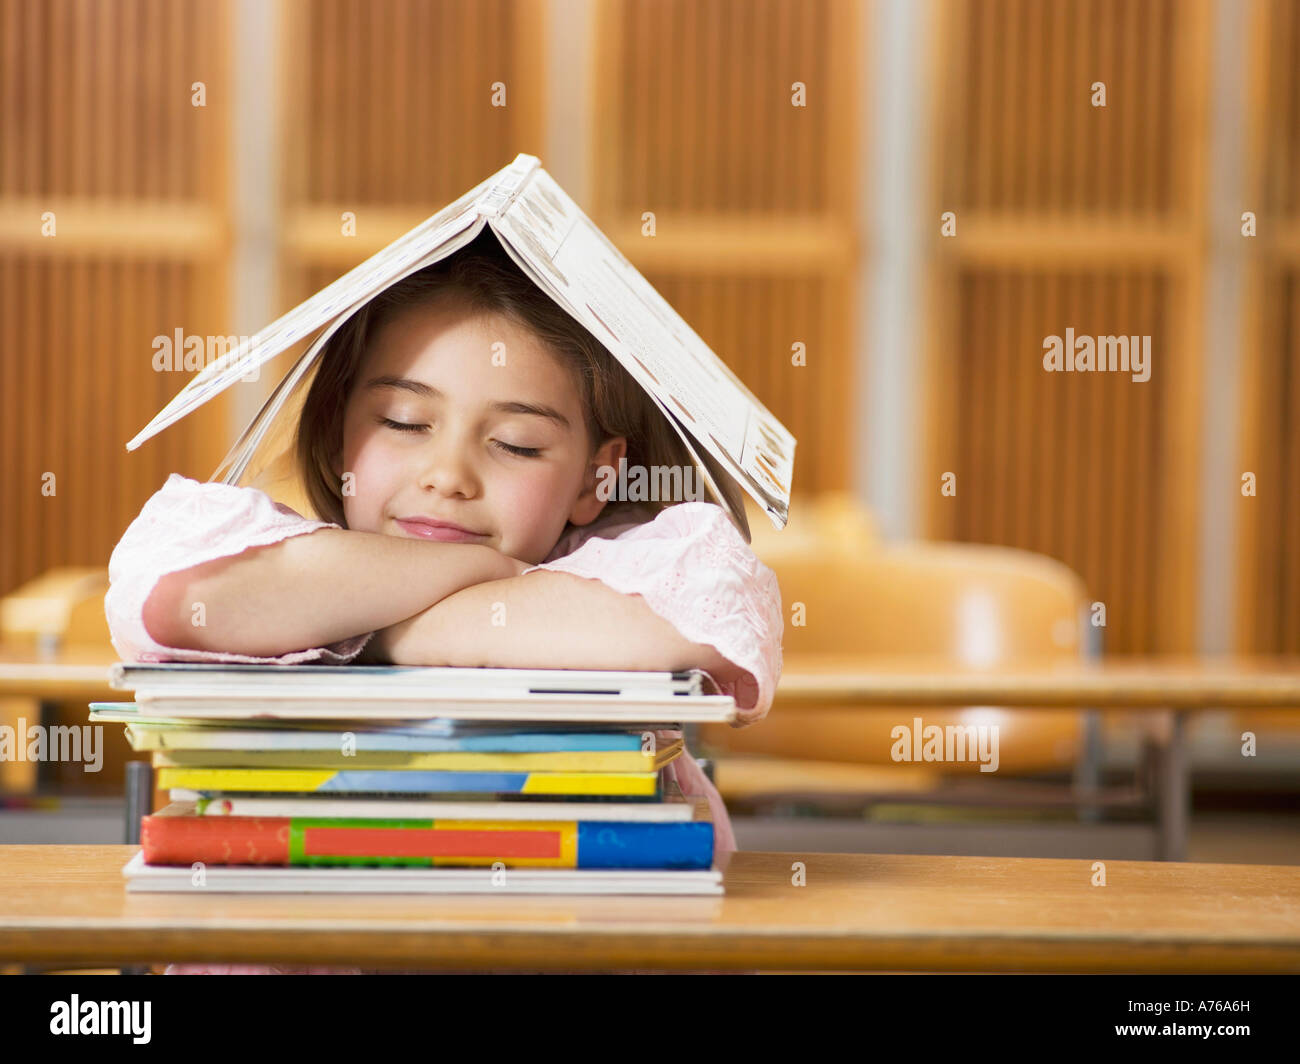 Girl (4-7) sitting desk, leaning on stack of books, eyes closed - Stock Image